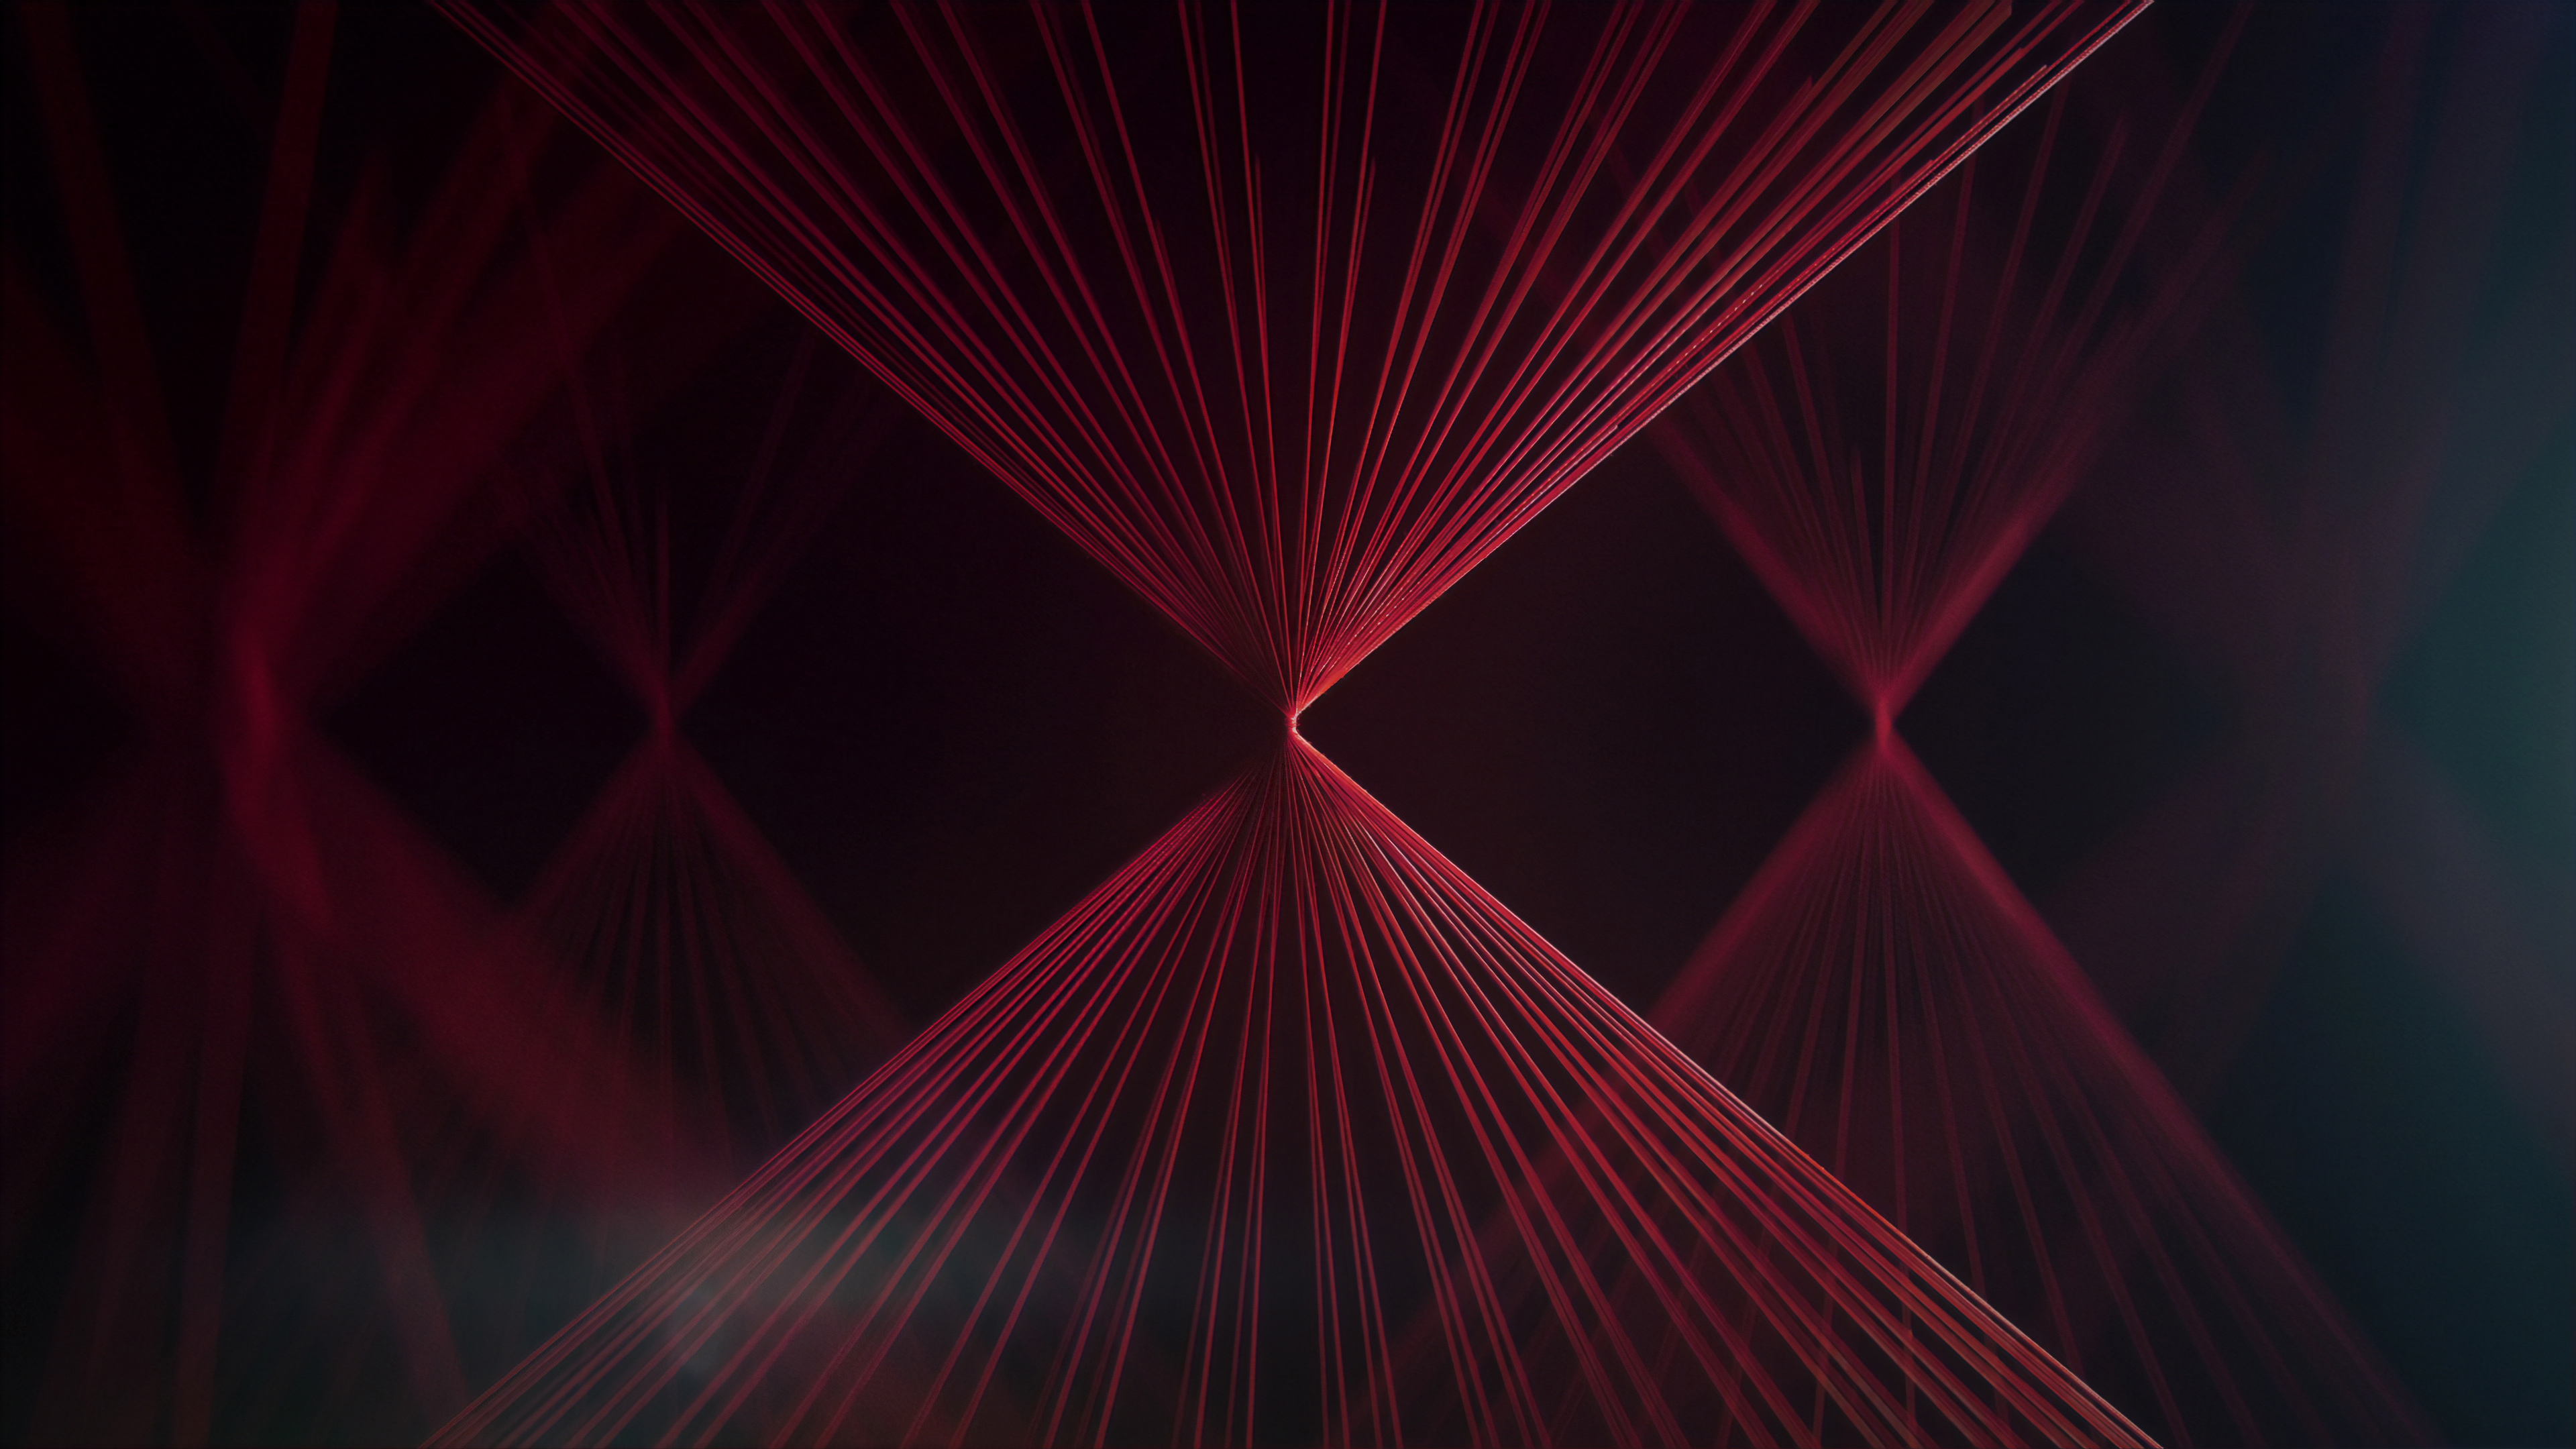 threads abstract 1565055983 - Threads Abstract - hd-wallpapers, digital art wallpapers, behance wallpapers, abstract wallpapers, 4k-wallpapers